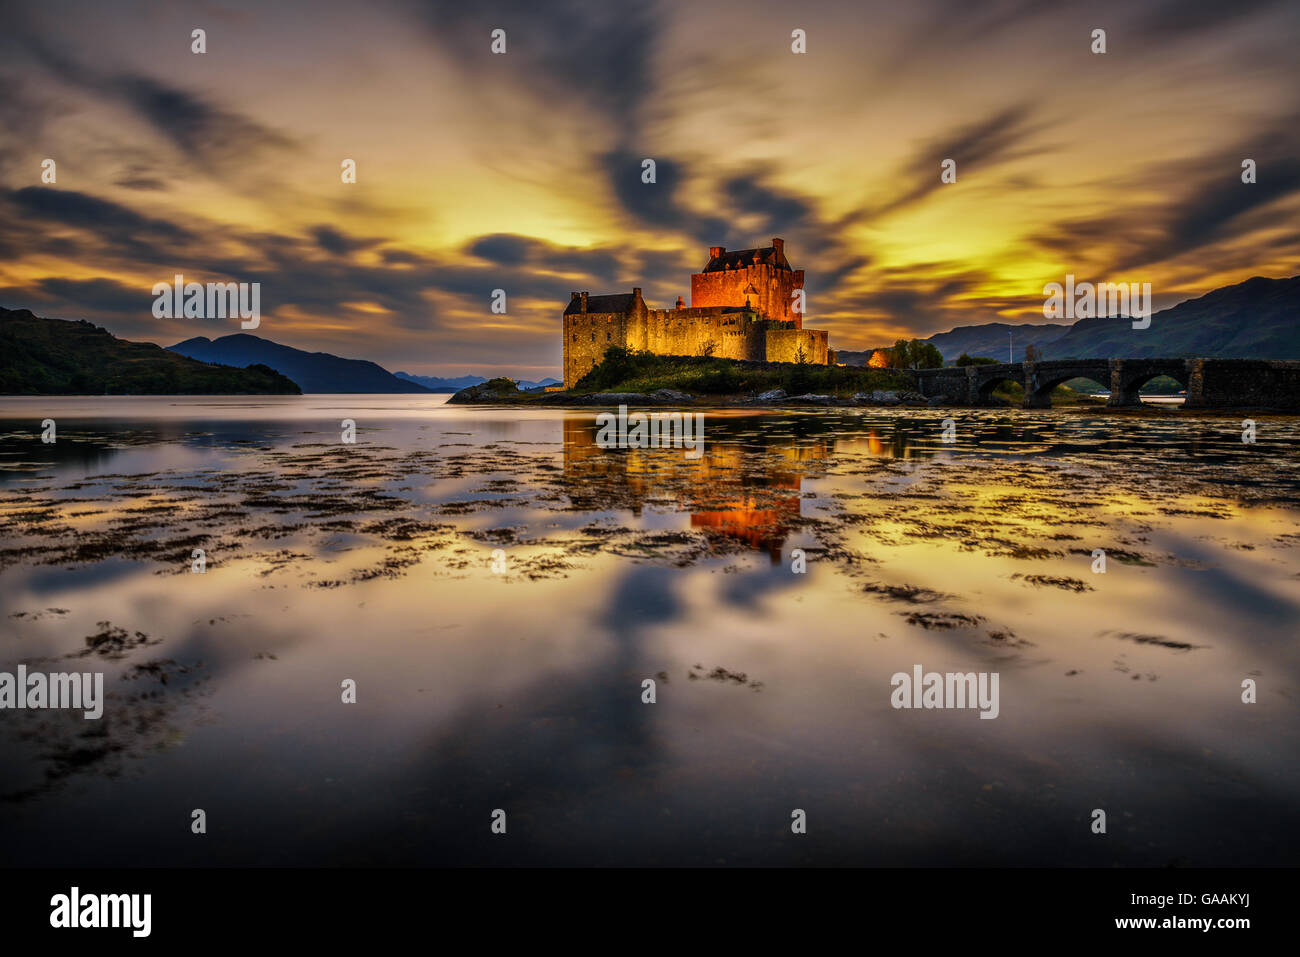 Sunset over Eilean Donan Castle, Scotland, United Kingdom. Long exposure. - Stock Image